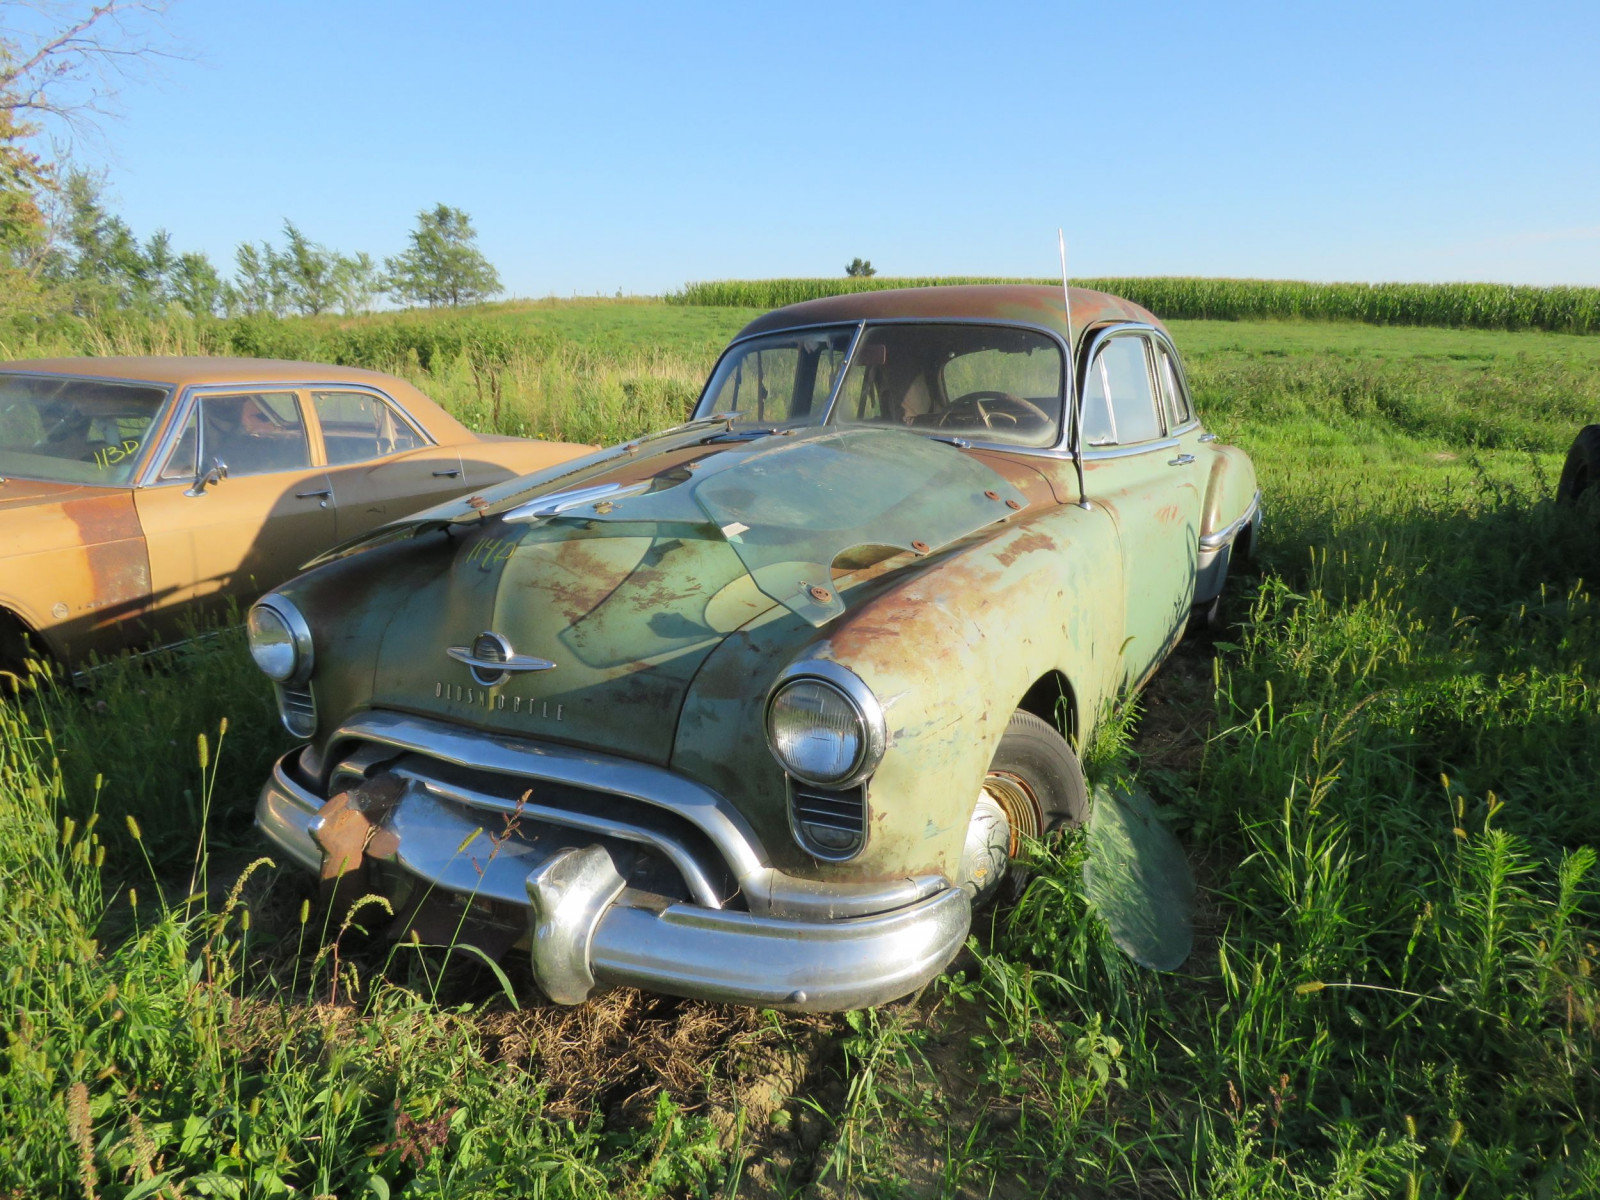 1949 Oldsmobile 4dr Sedan for Project or Parts - Image 2